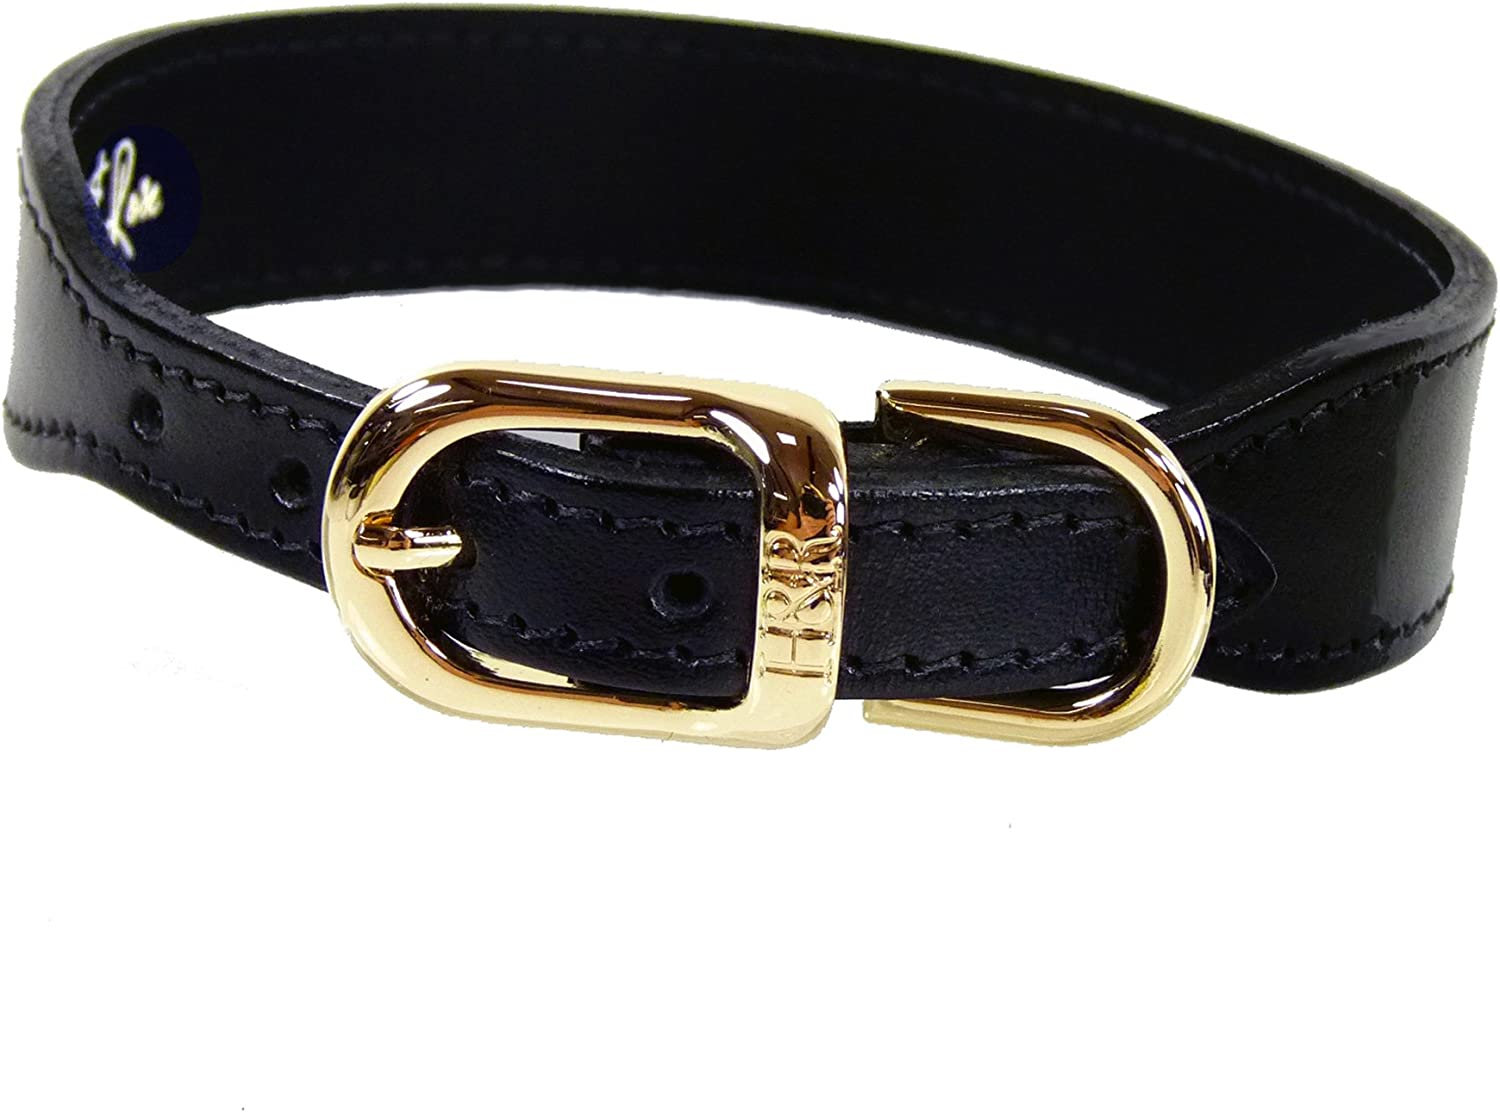 Hartman & pink 1350 Plain gold Plated Dog Collar, 10 to 12Inch, Black Patent